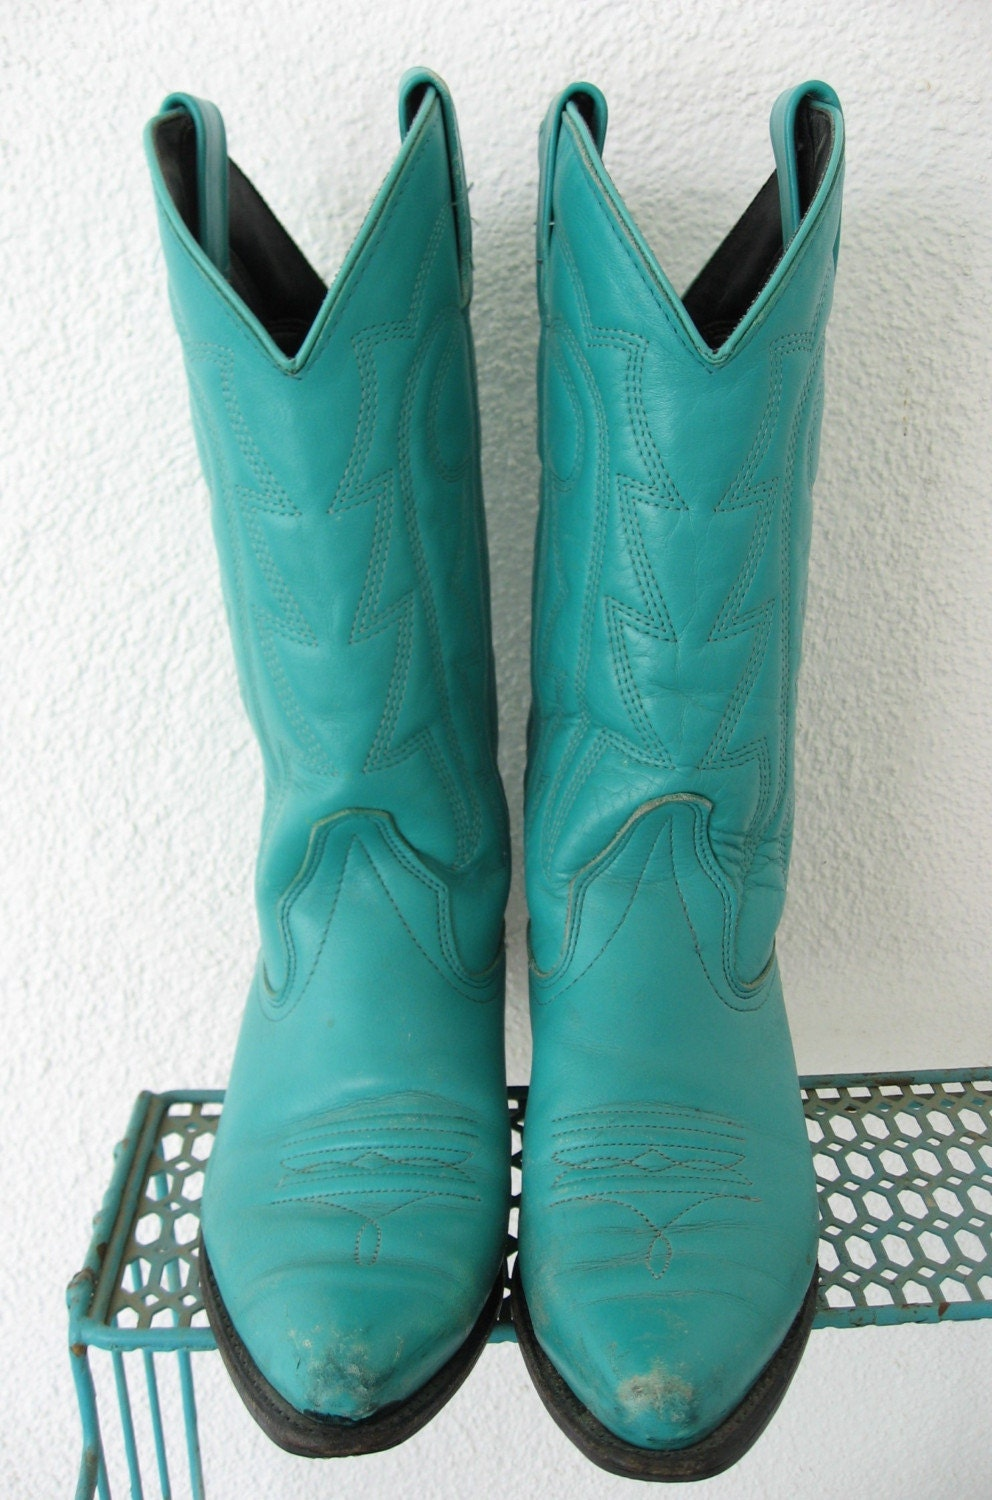 Turquoise Cowgirl Boots Size 6 M